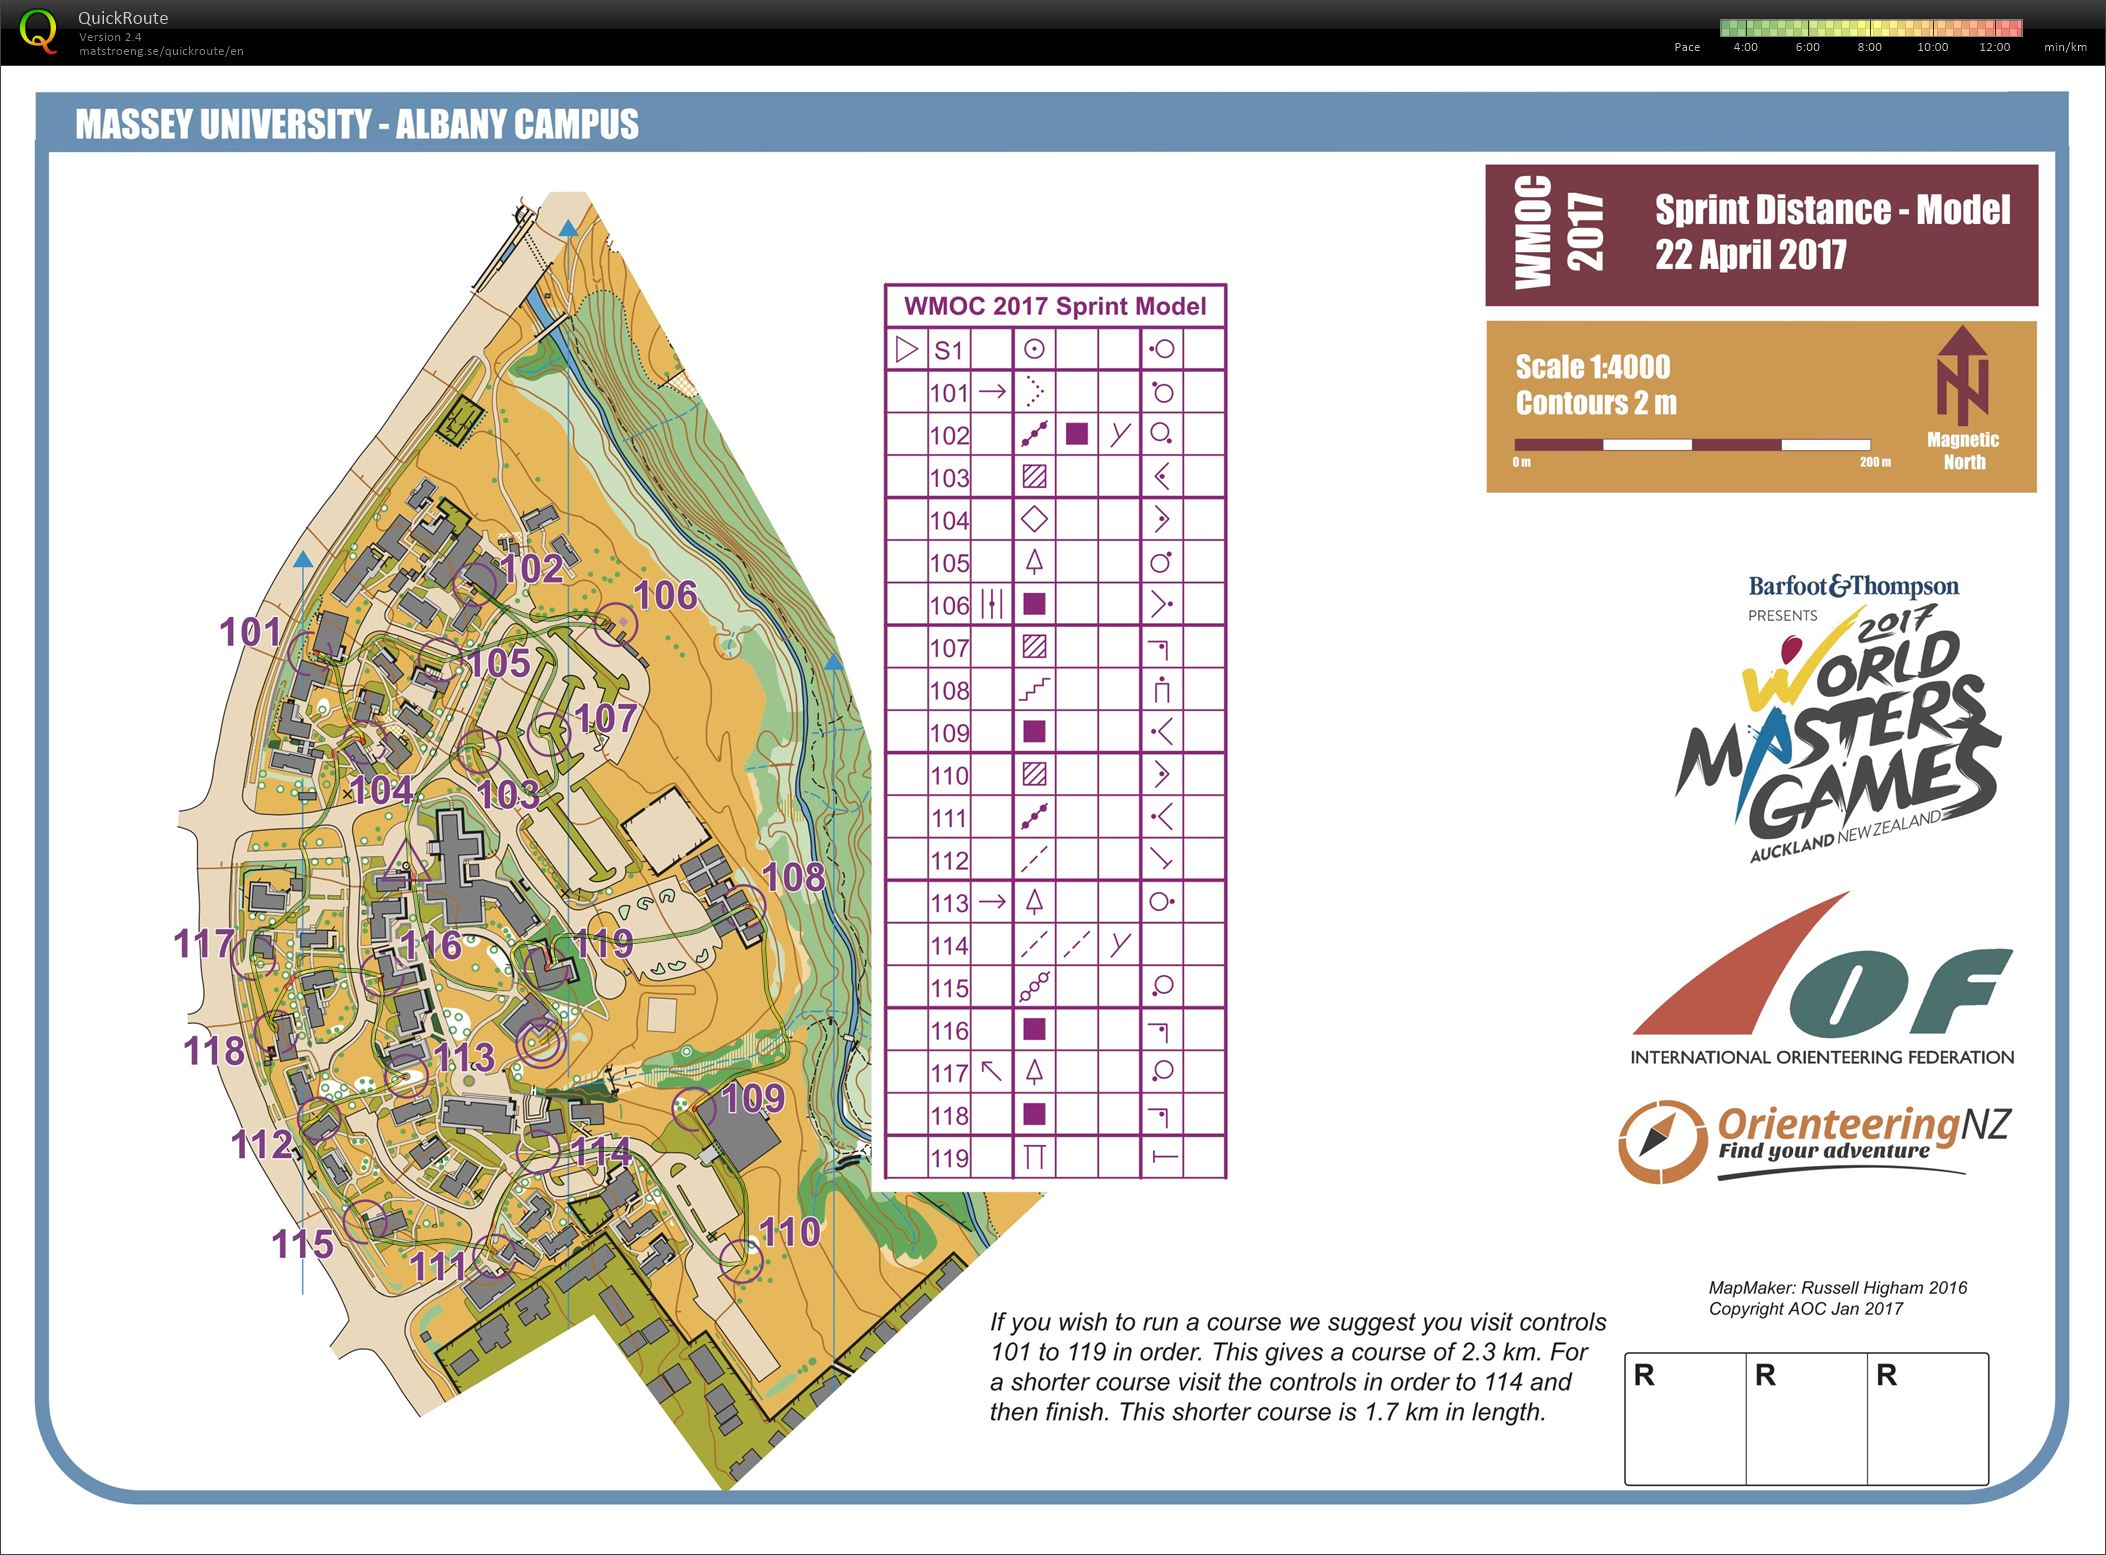 Map File not found :-(